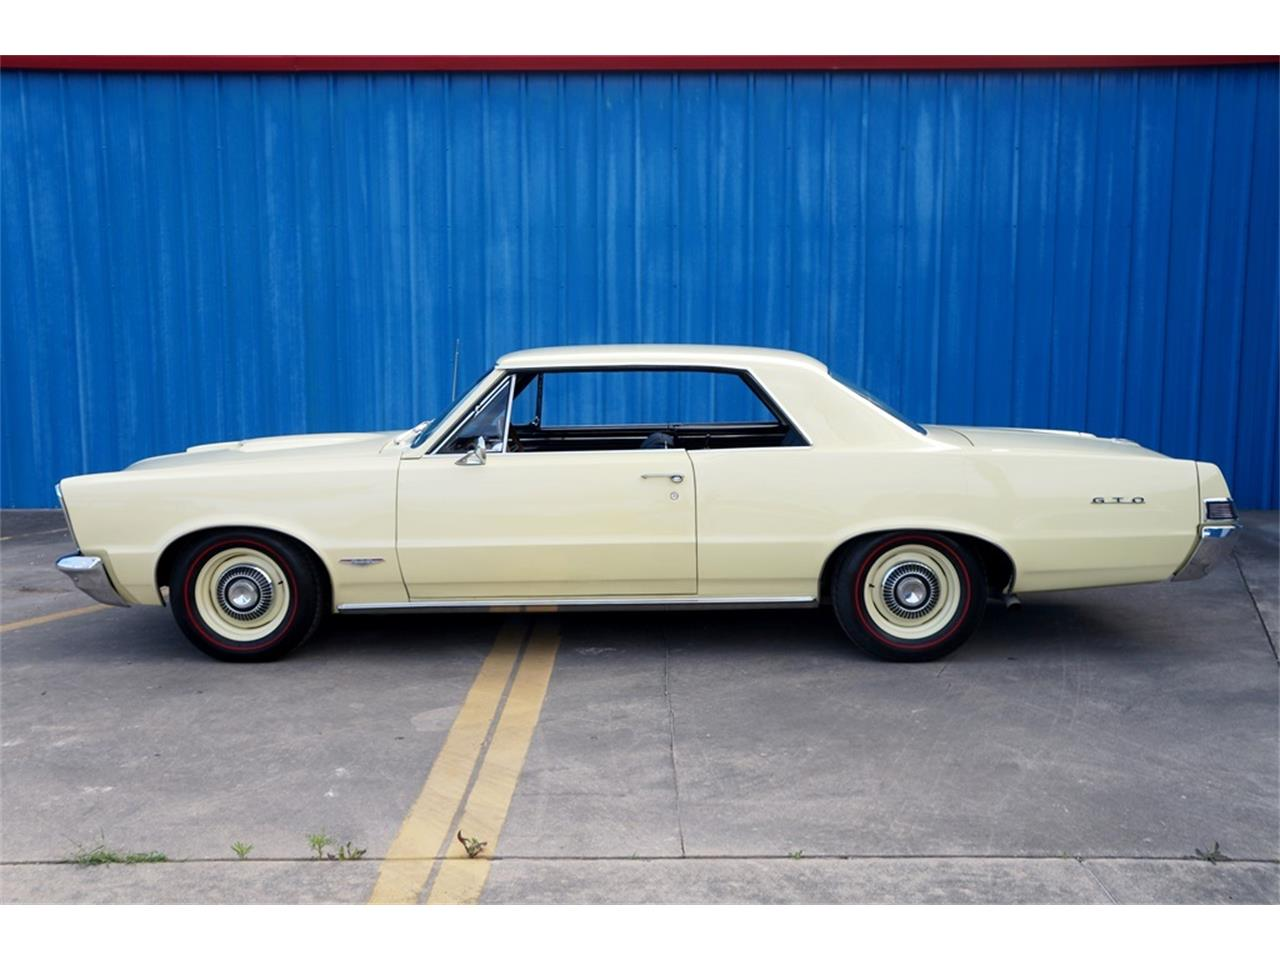 Large Picture of '65 GTO located in New Braunfels Texas - $44,900.00 Offered by A&E Classic Cars - PWOM